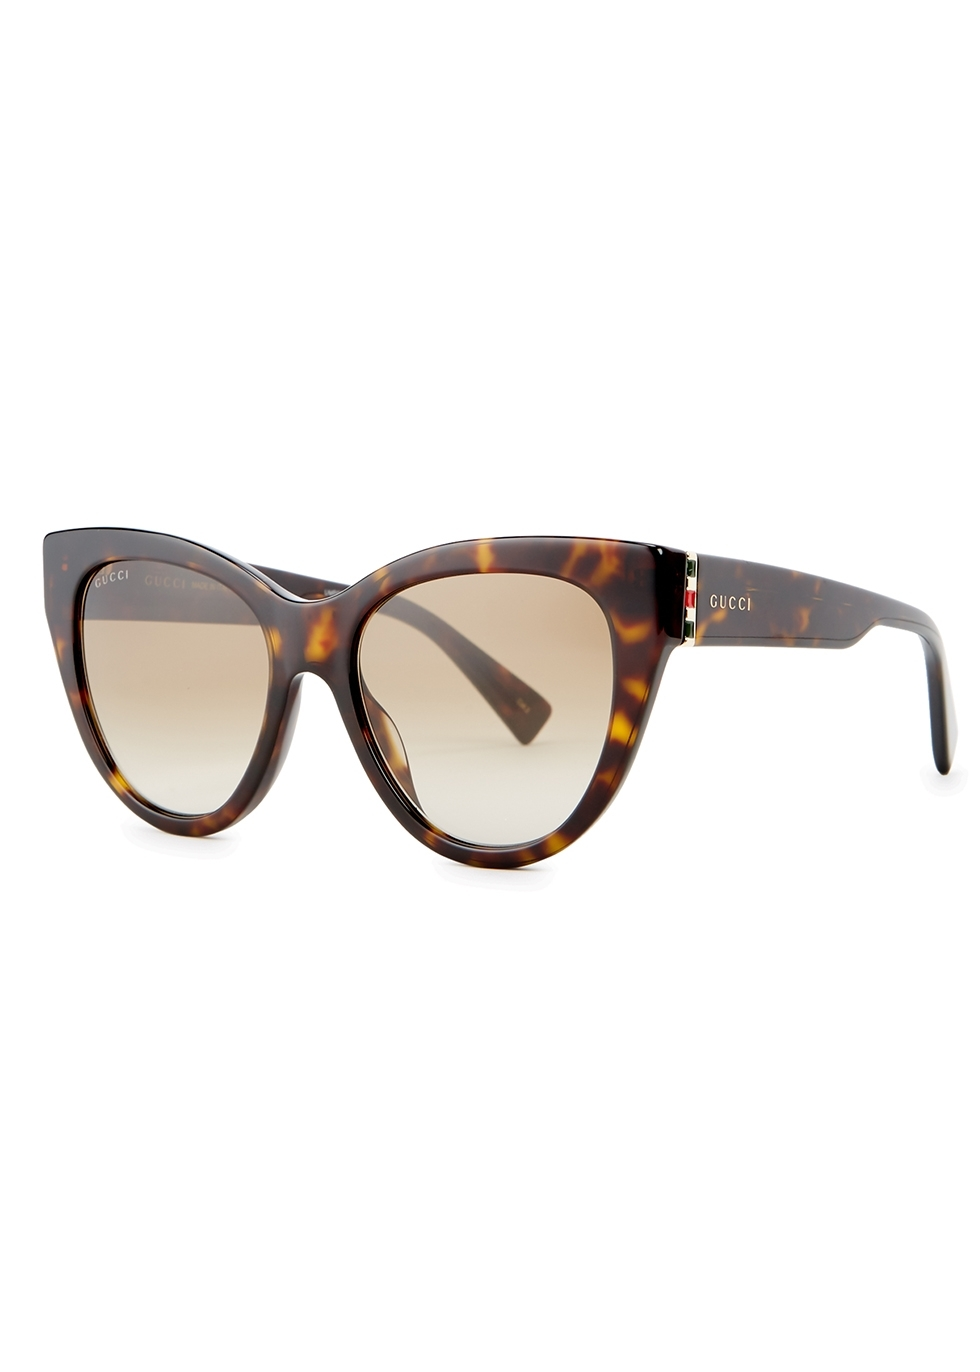 27469f1e5f0 Gucci Sunglasses - Womens - Harvey Nichols